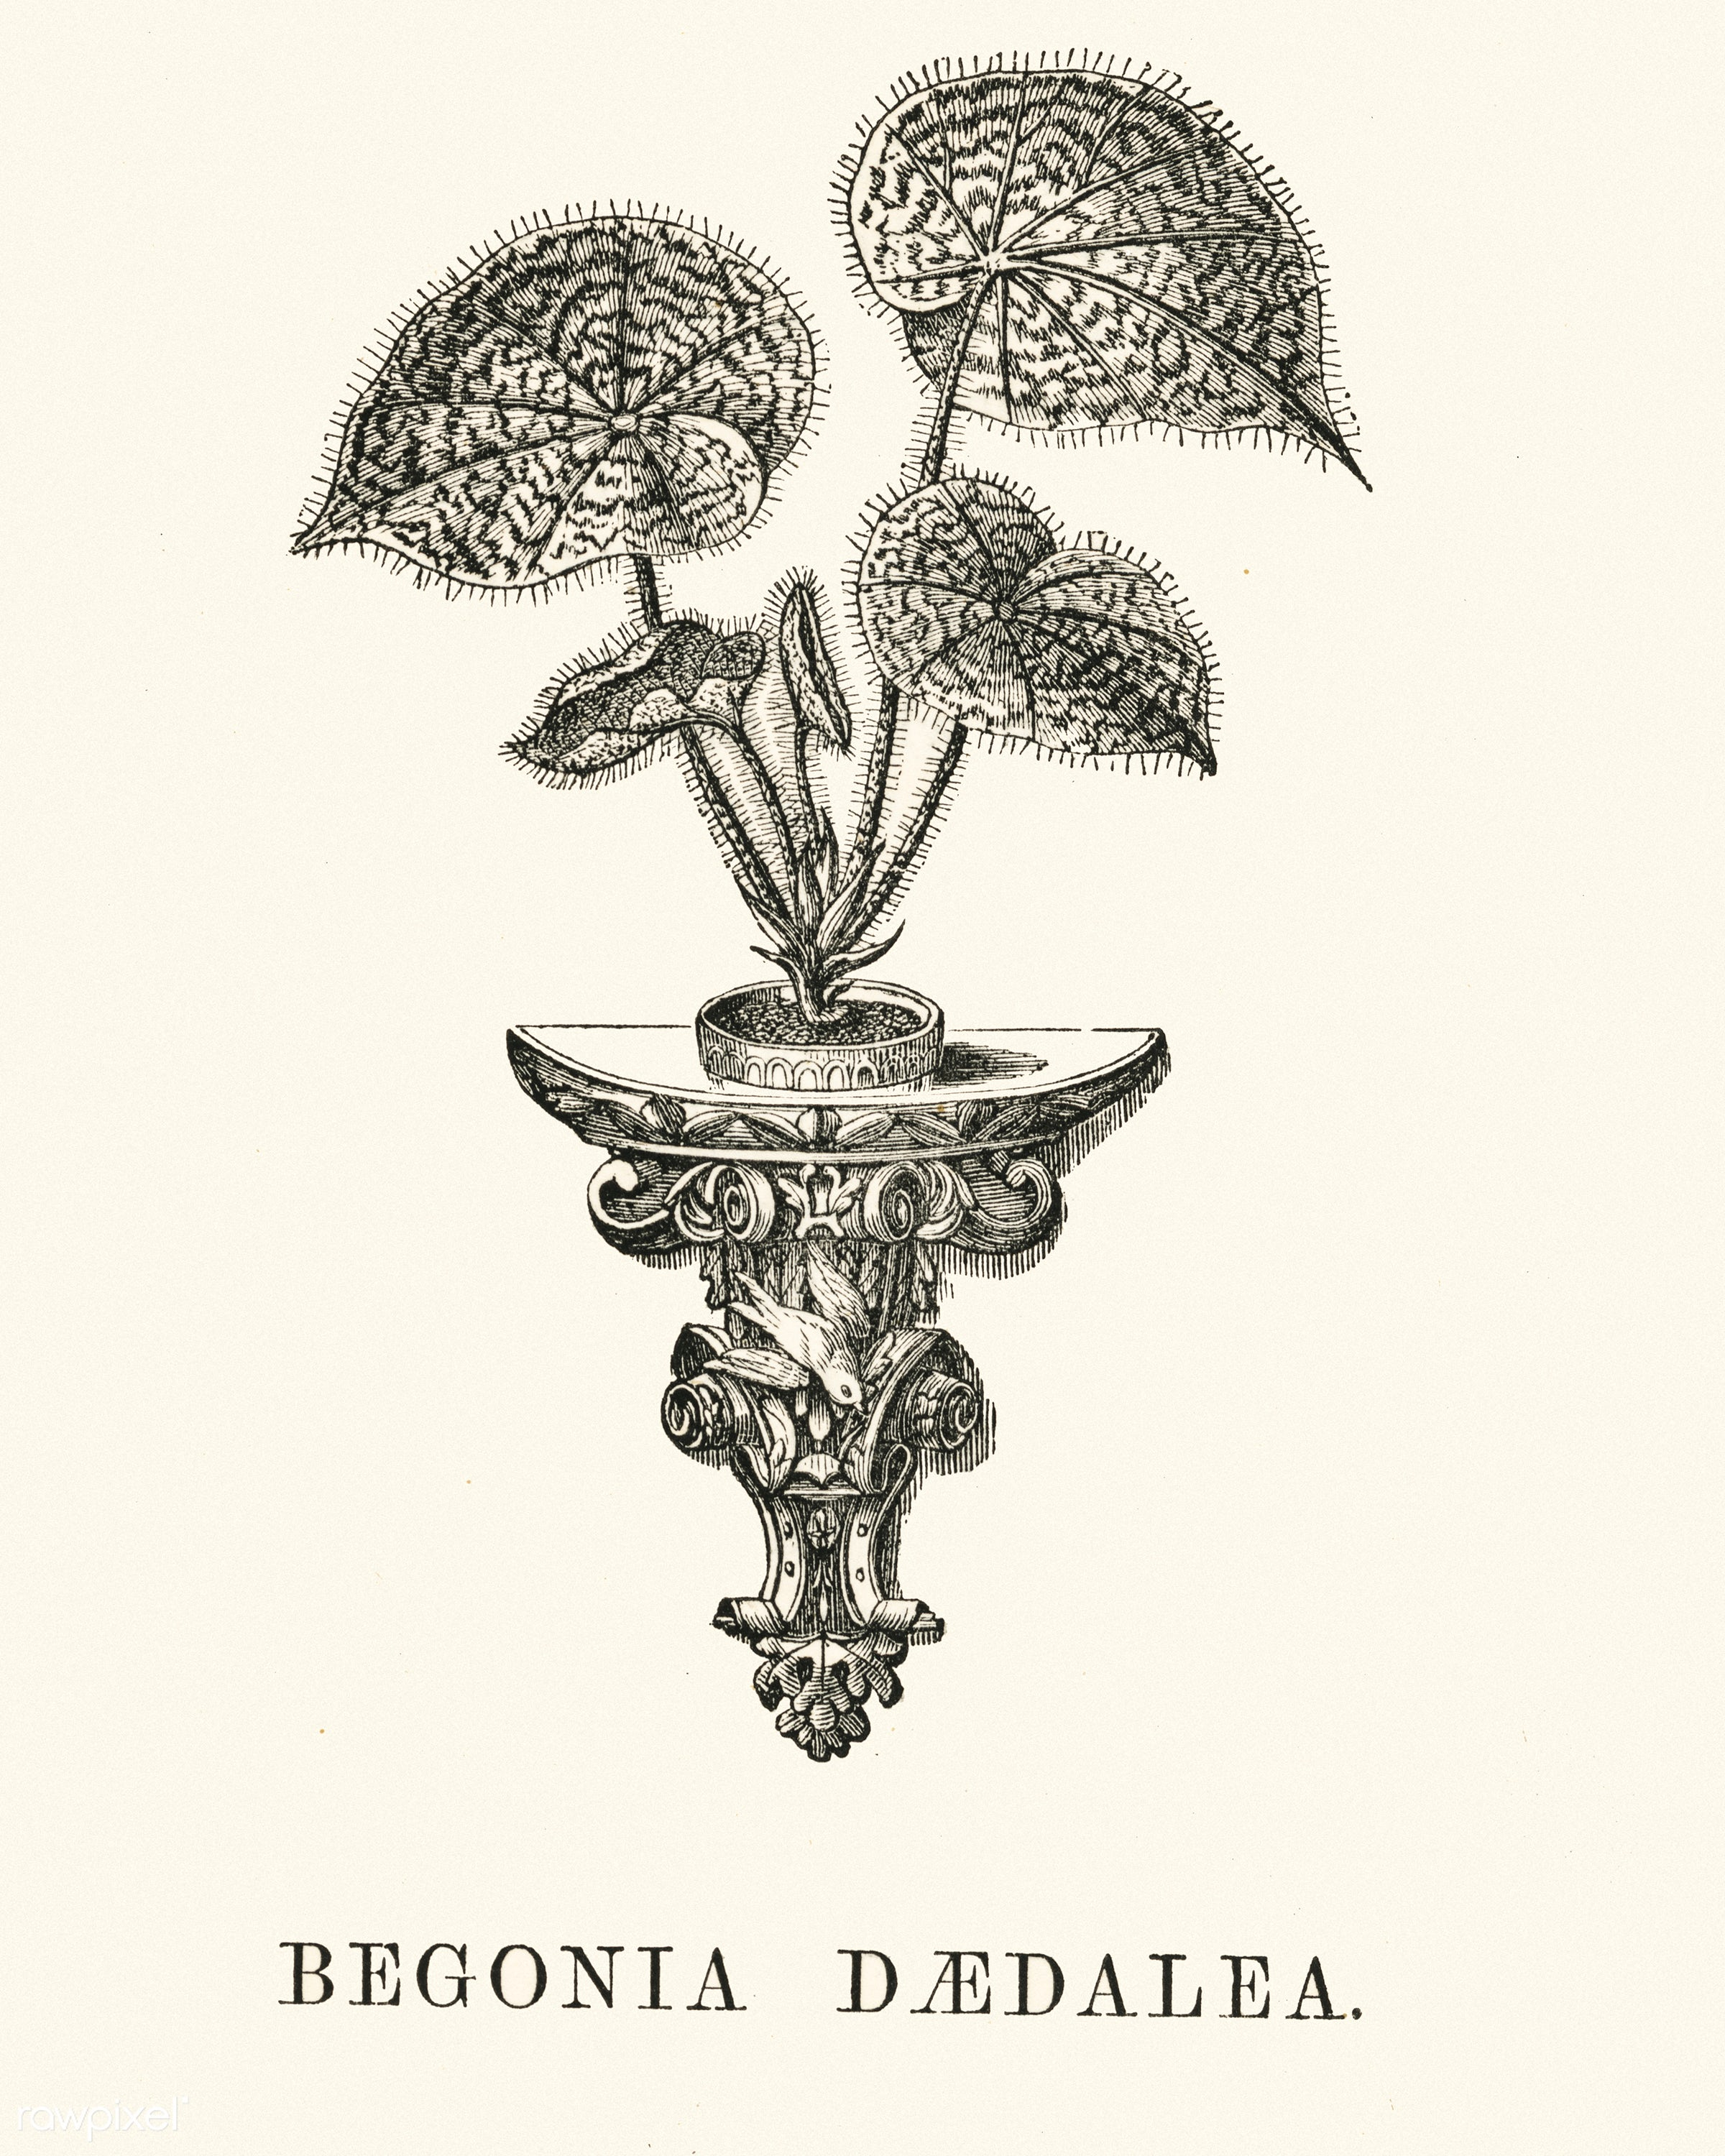 Begonia Daedalea engraved by Benjamin Fawcett (1808-1893) for Shirley Hibberd's (1825-1890) New and Rare Beautiful-...